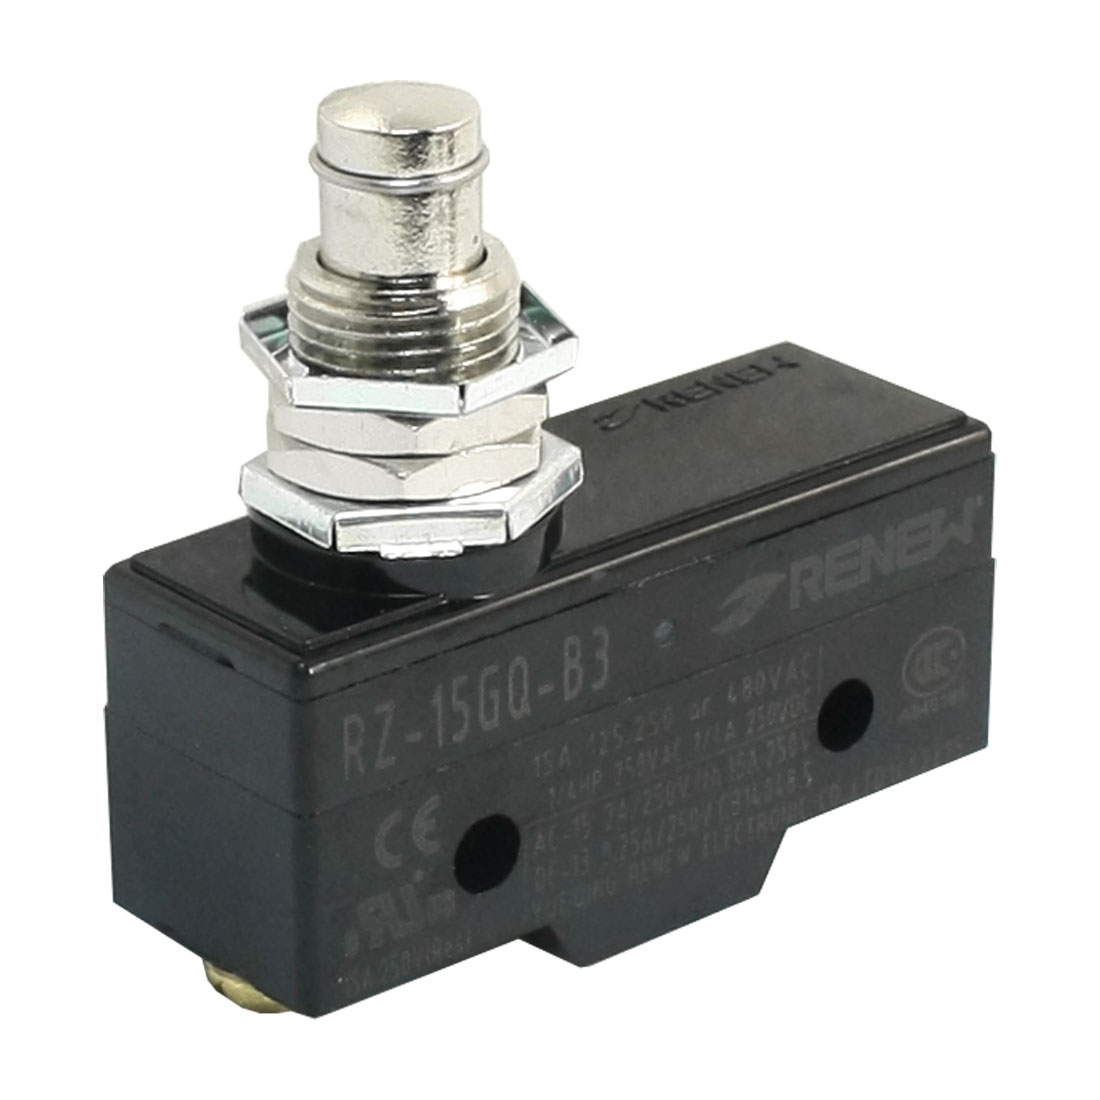 AC250V 15A 12mm Thread Panel Mounting SPDT 1NO 1NC 3 Screw Terminals Momentary Push Plunger Type Micro Switch